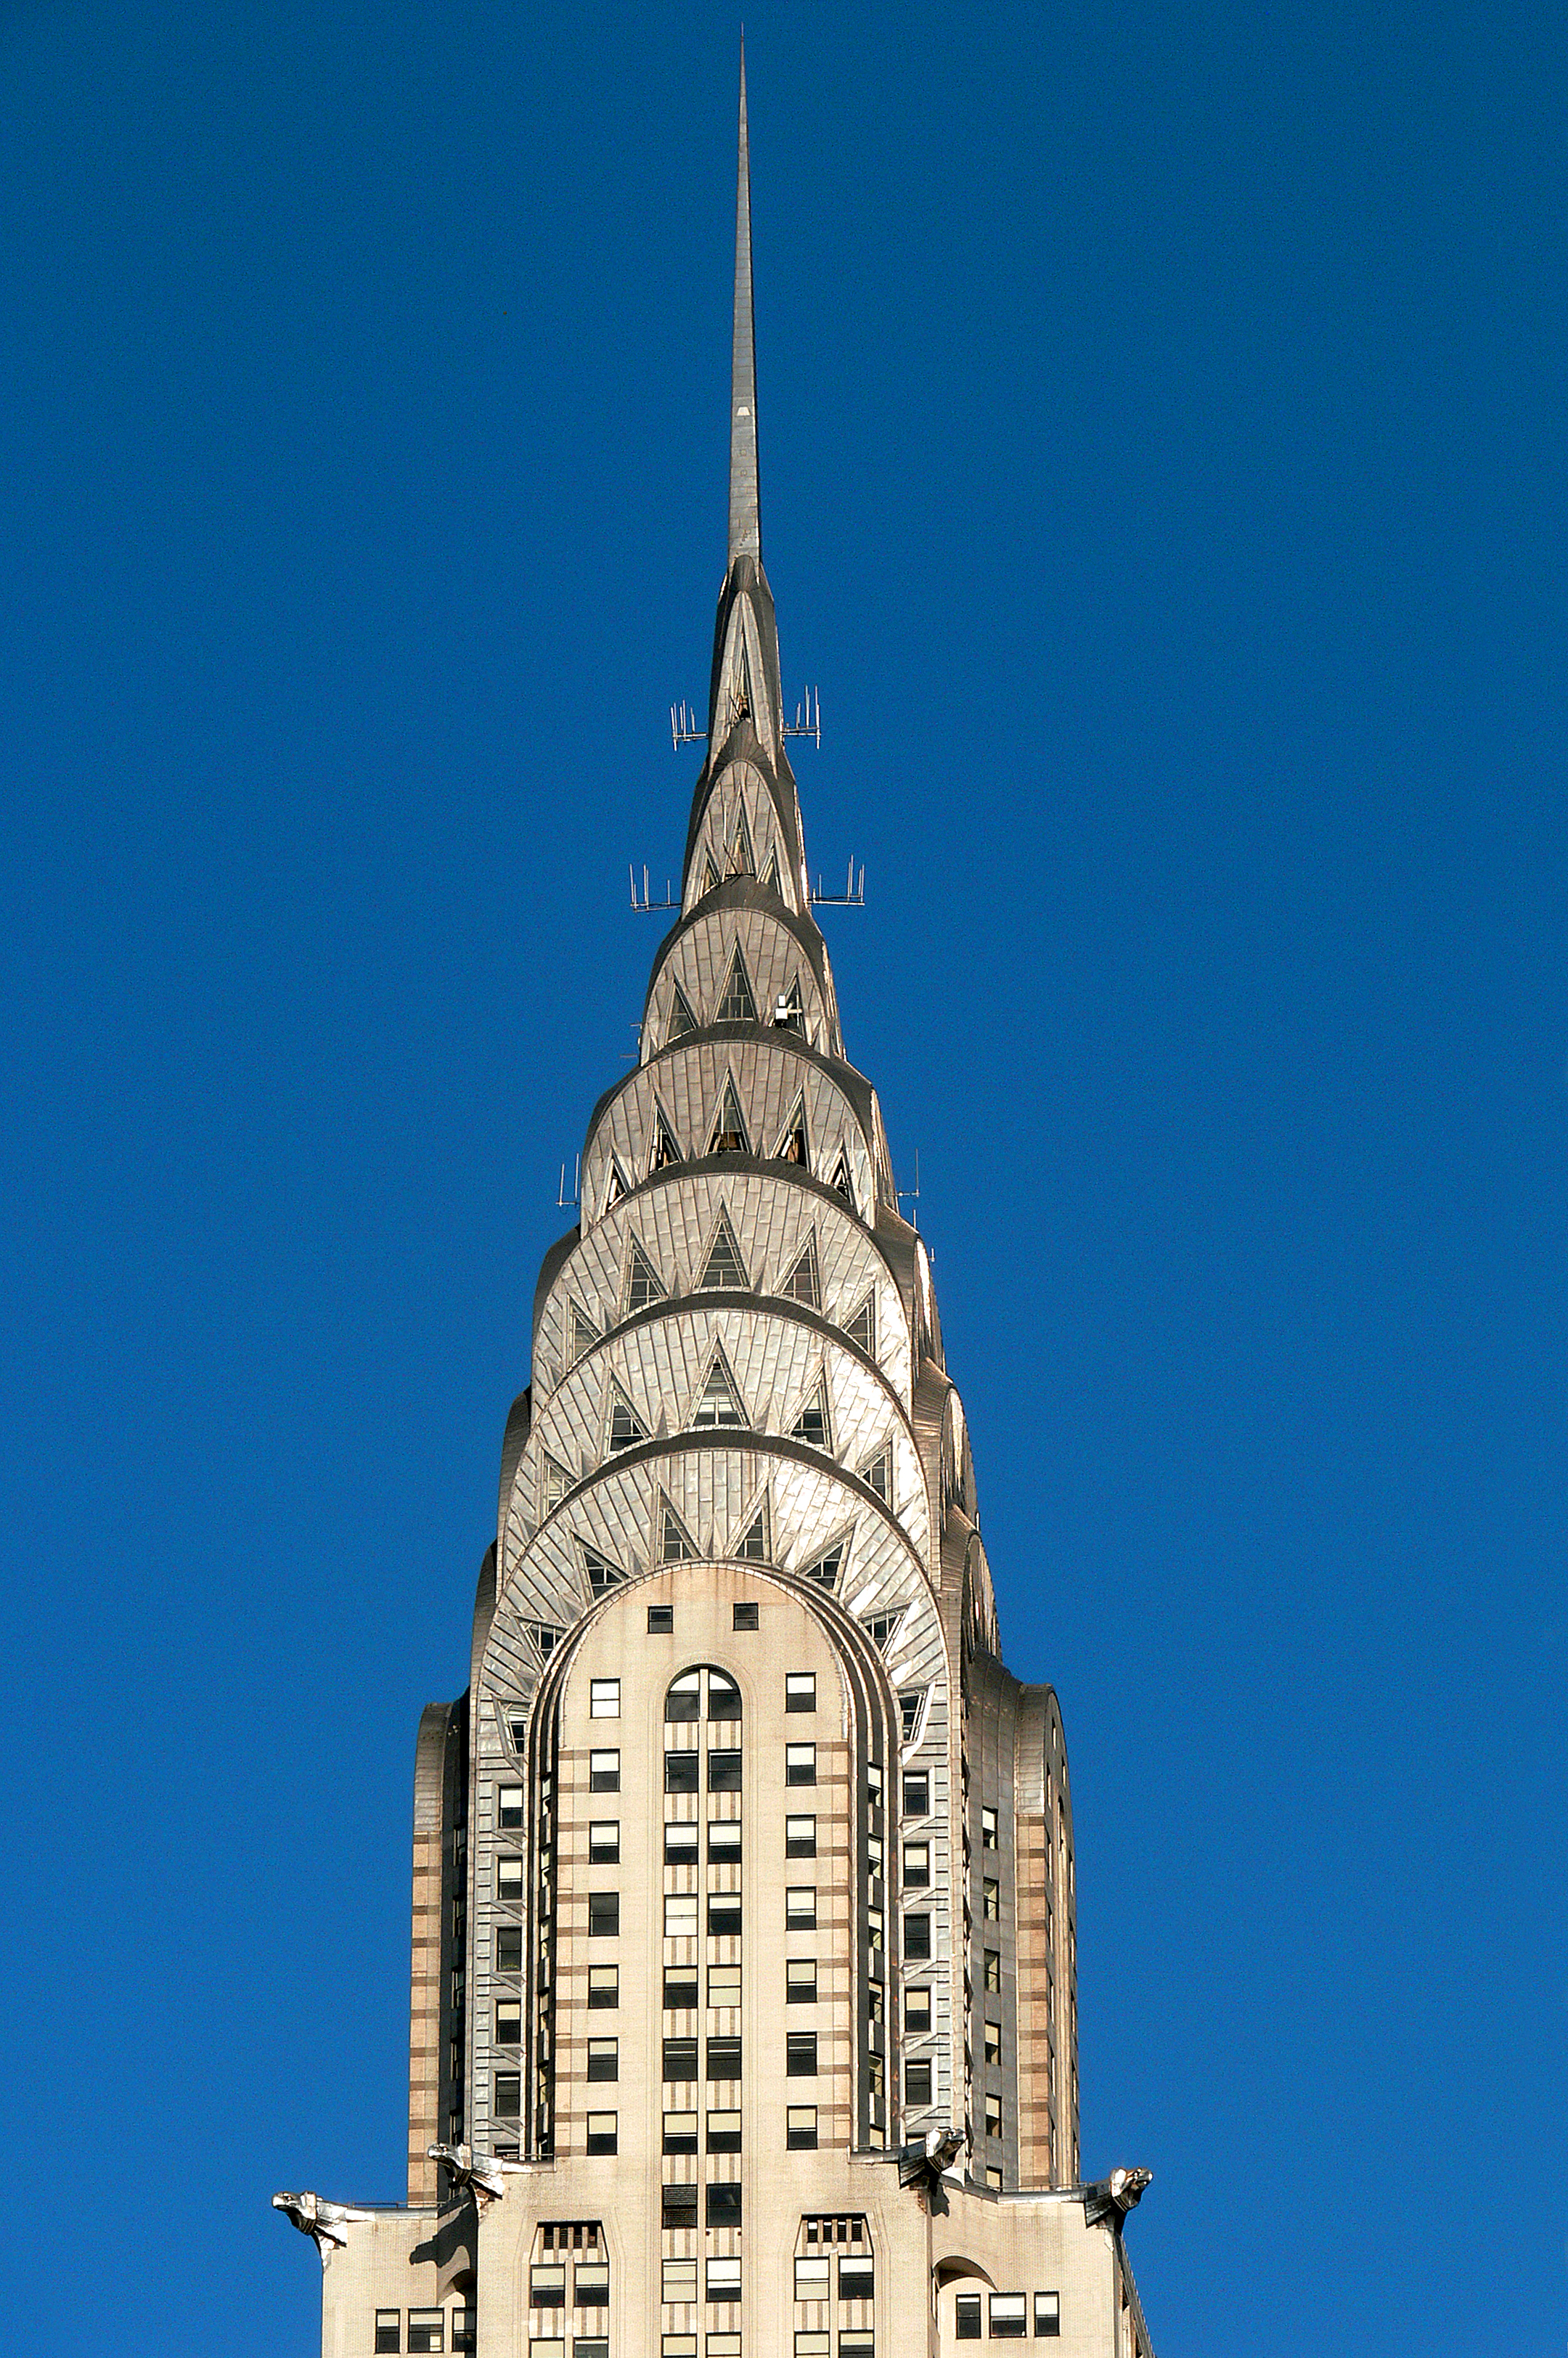 chrysler building historias de nueva york. Black Bedroom Furniture Sets. Home Design Ideas